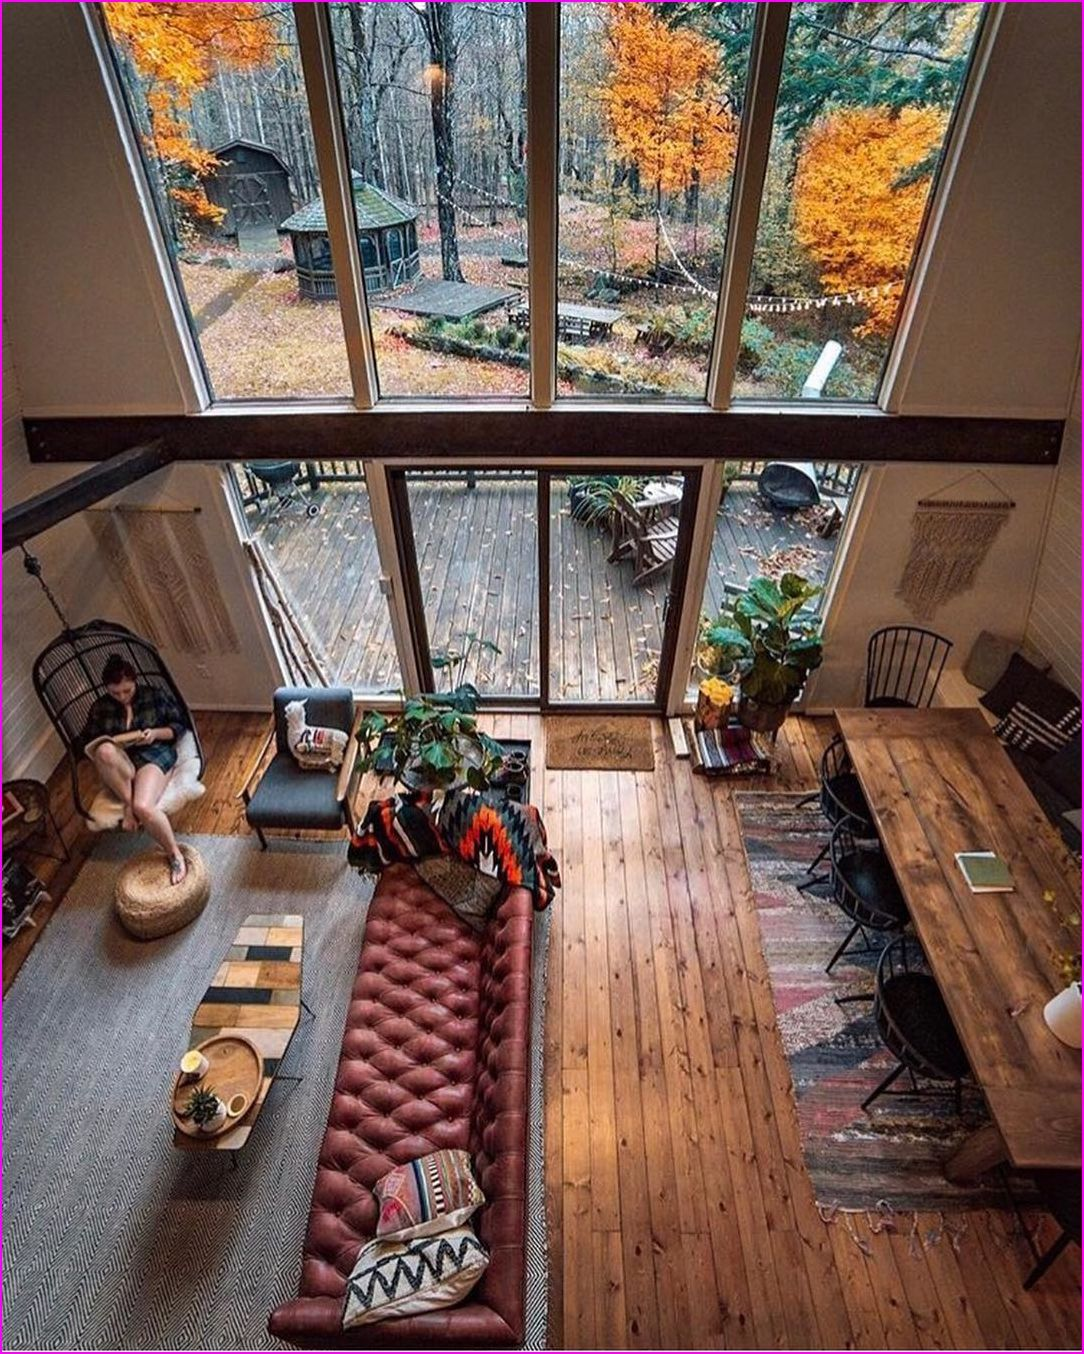 34 Photos Of Pretty Picture Of Creative House Ideas With Good Suggestions Your Home Will Be Transformed Minimalist Home Interior House Design Minimalist Home